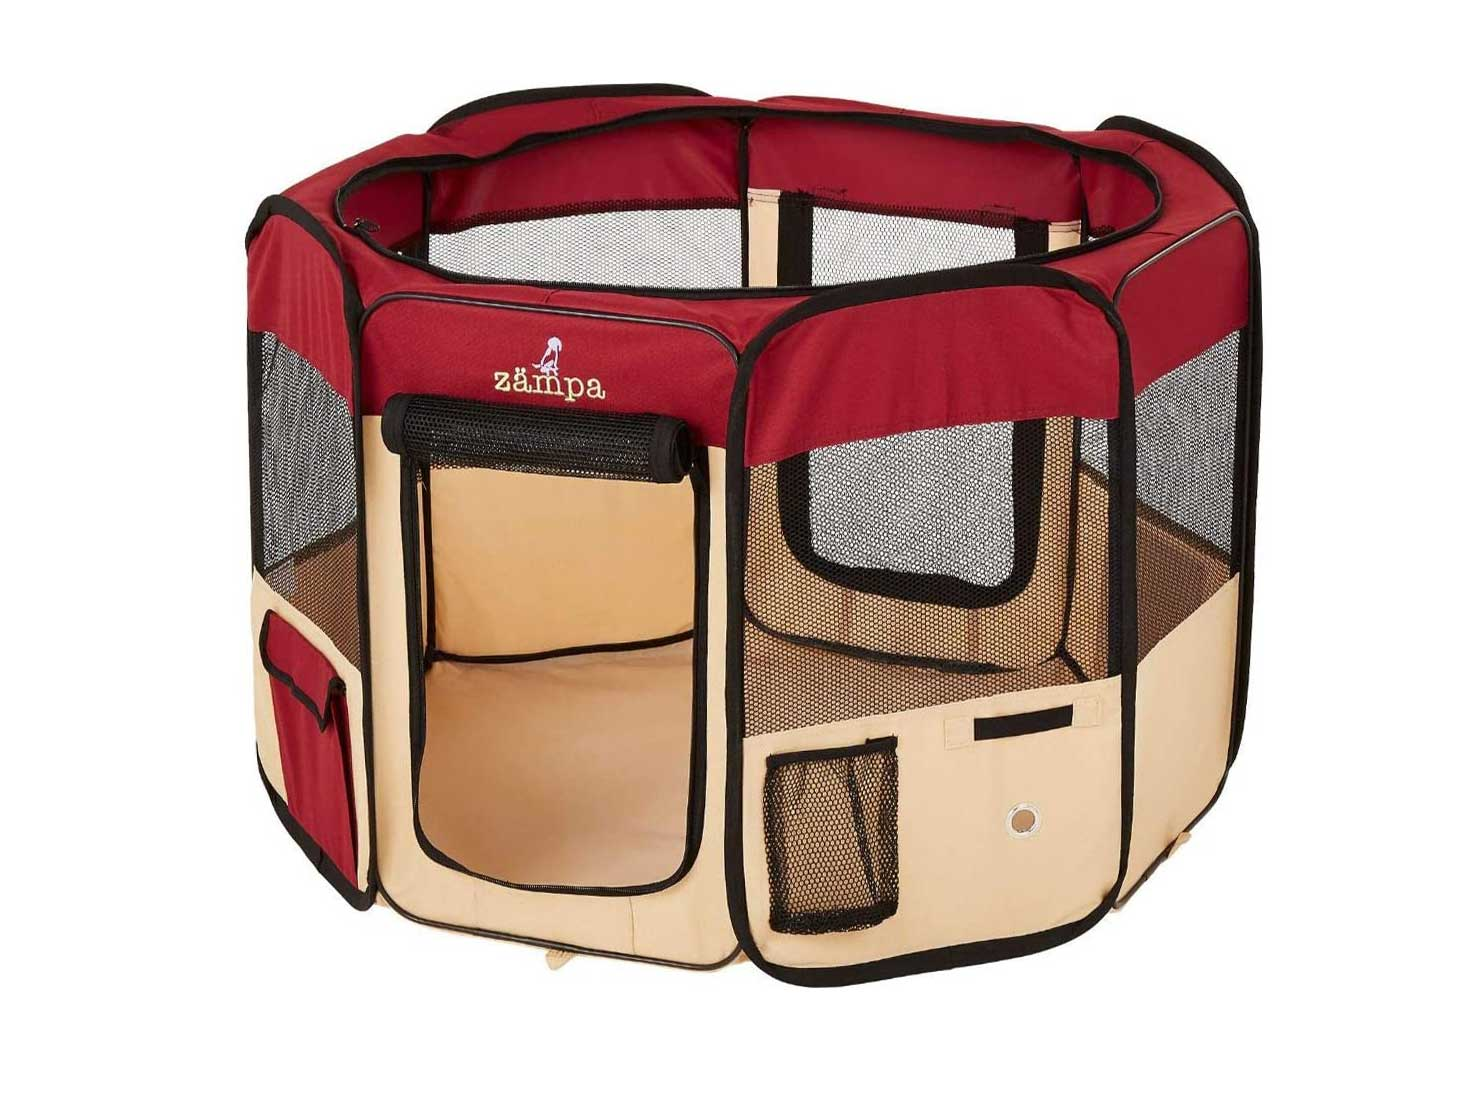 Zampa Portable Foldable Pet playpen Exercise Pen Kennel + Carrying Case for Larges Dogs Small Puppies/Cats | Indoor/Outdoor Use | Water Resistant